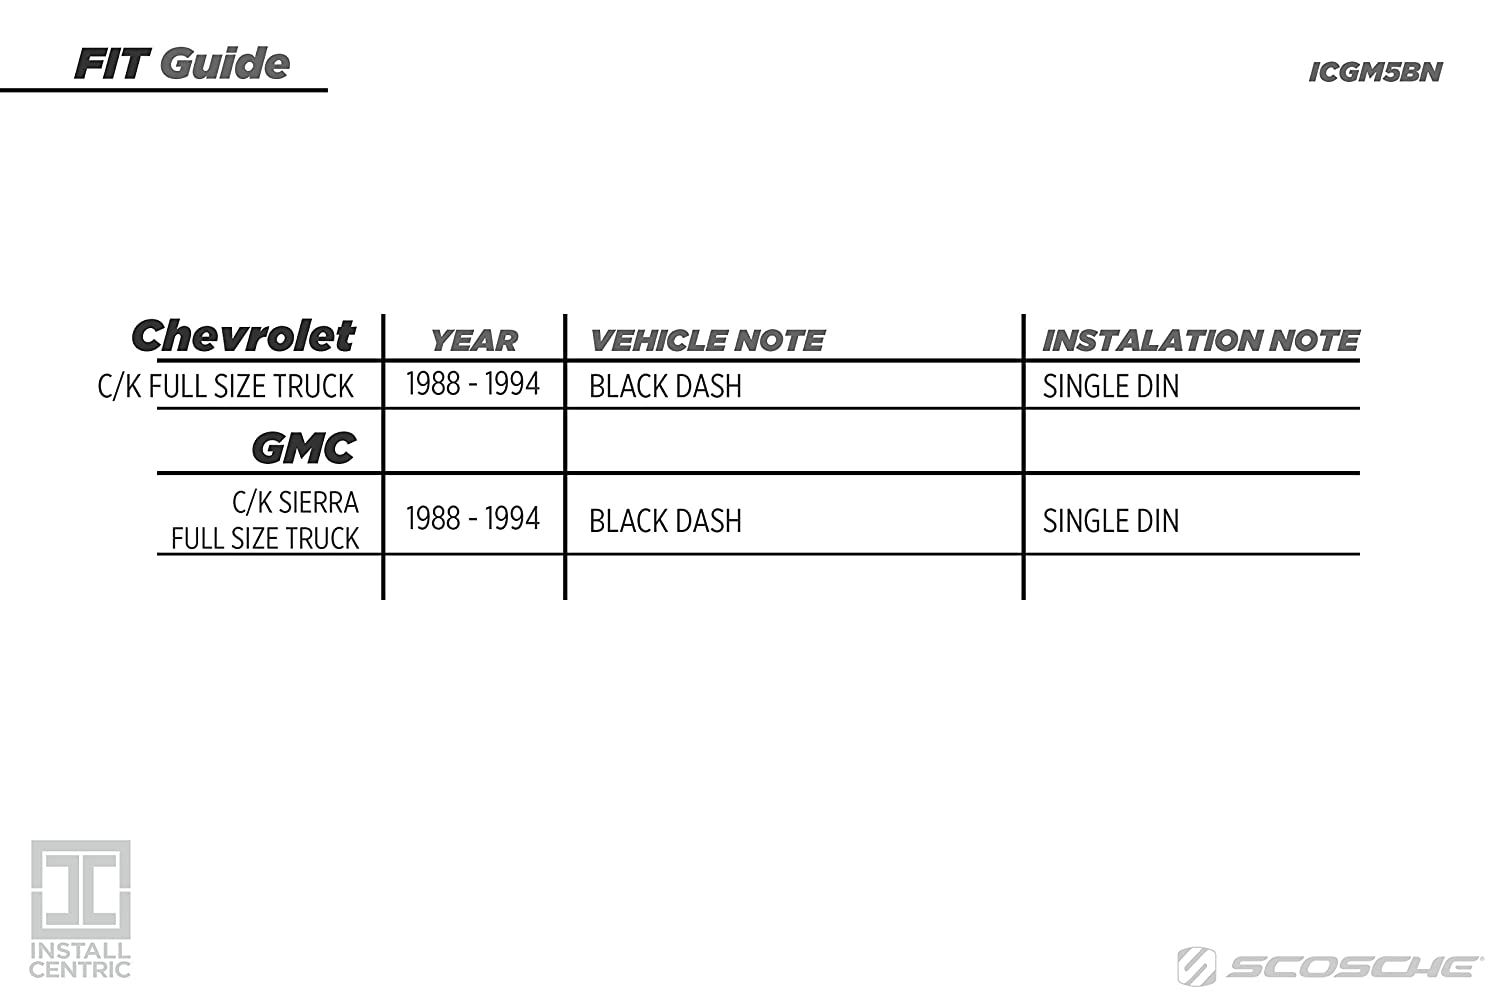 Install Centric ICGM5BN GMC//Chevrolet Full Size 1988-94 Truck BLACK Complete Installation Solution for Car Stereos SCOSCHE 0107ICGM5BN